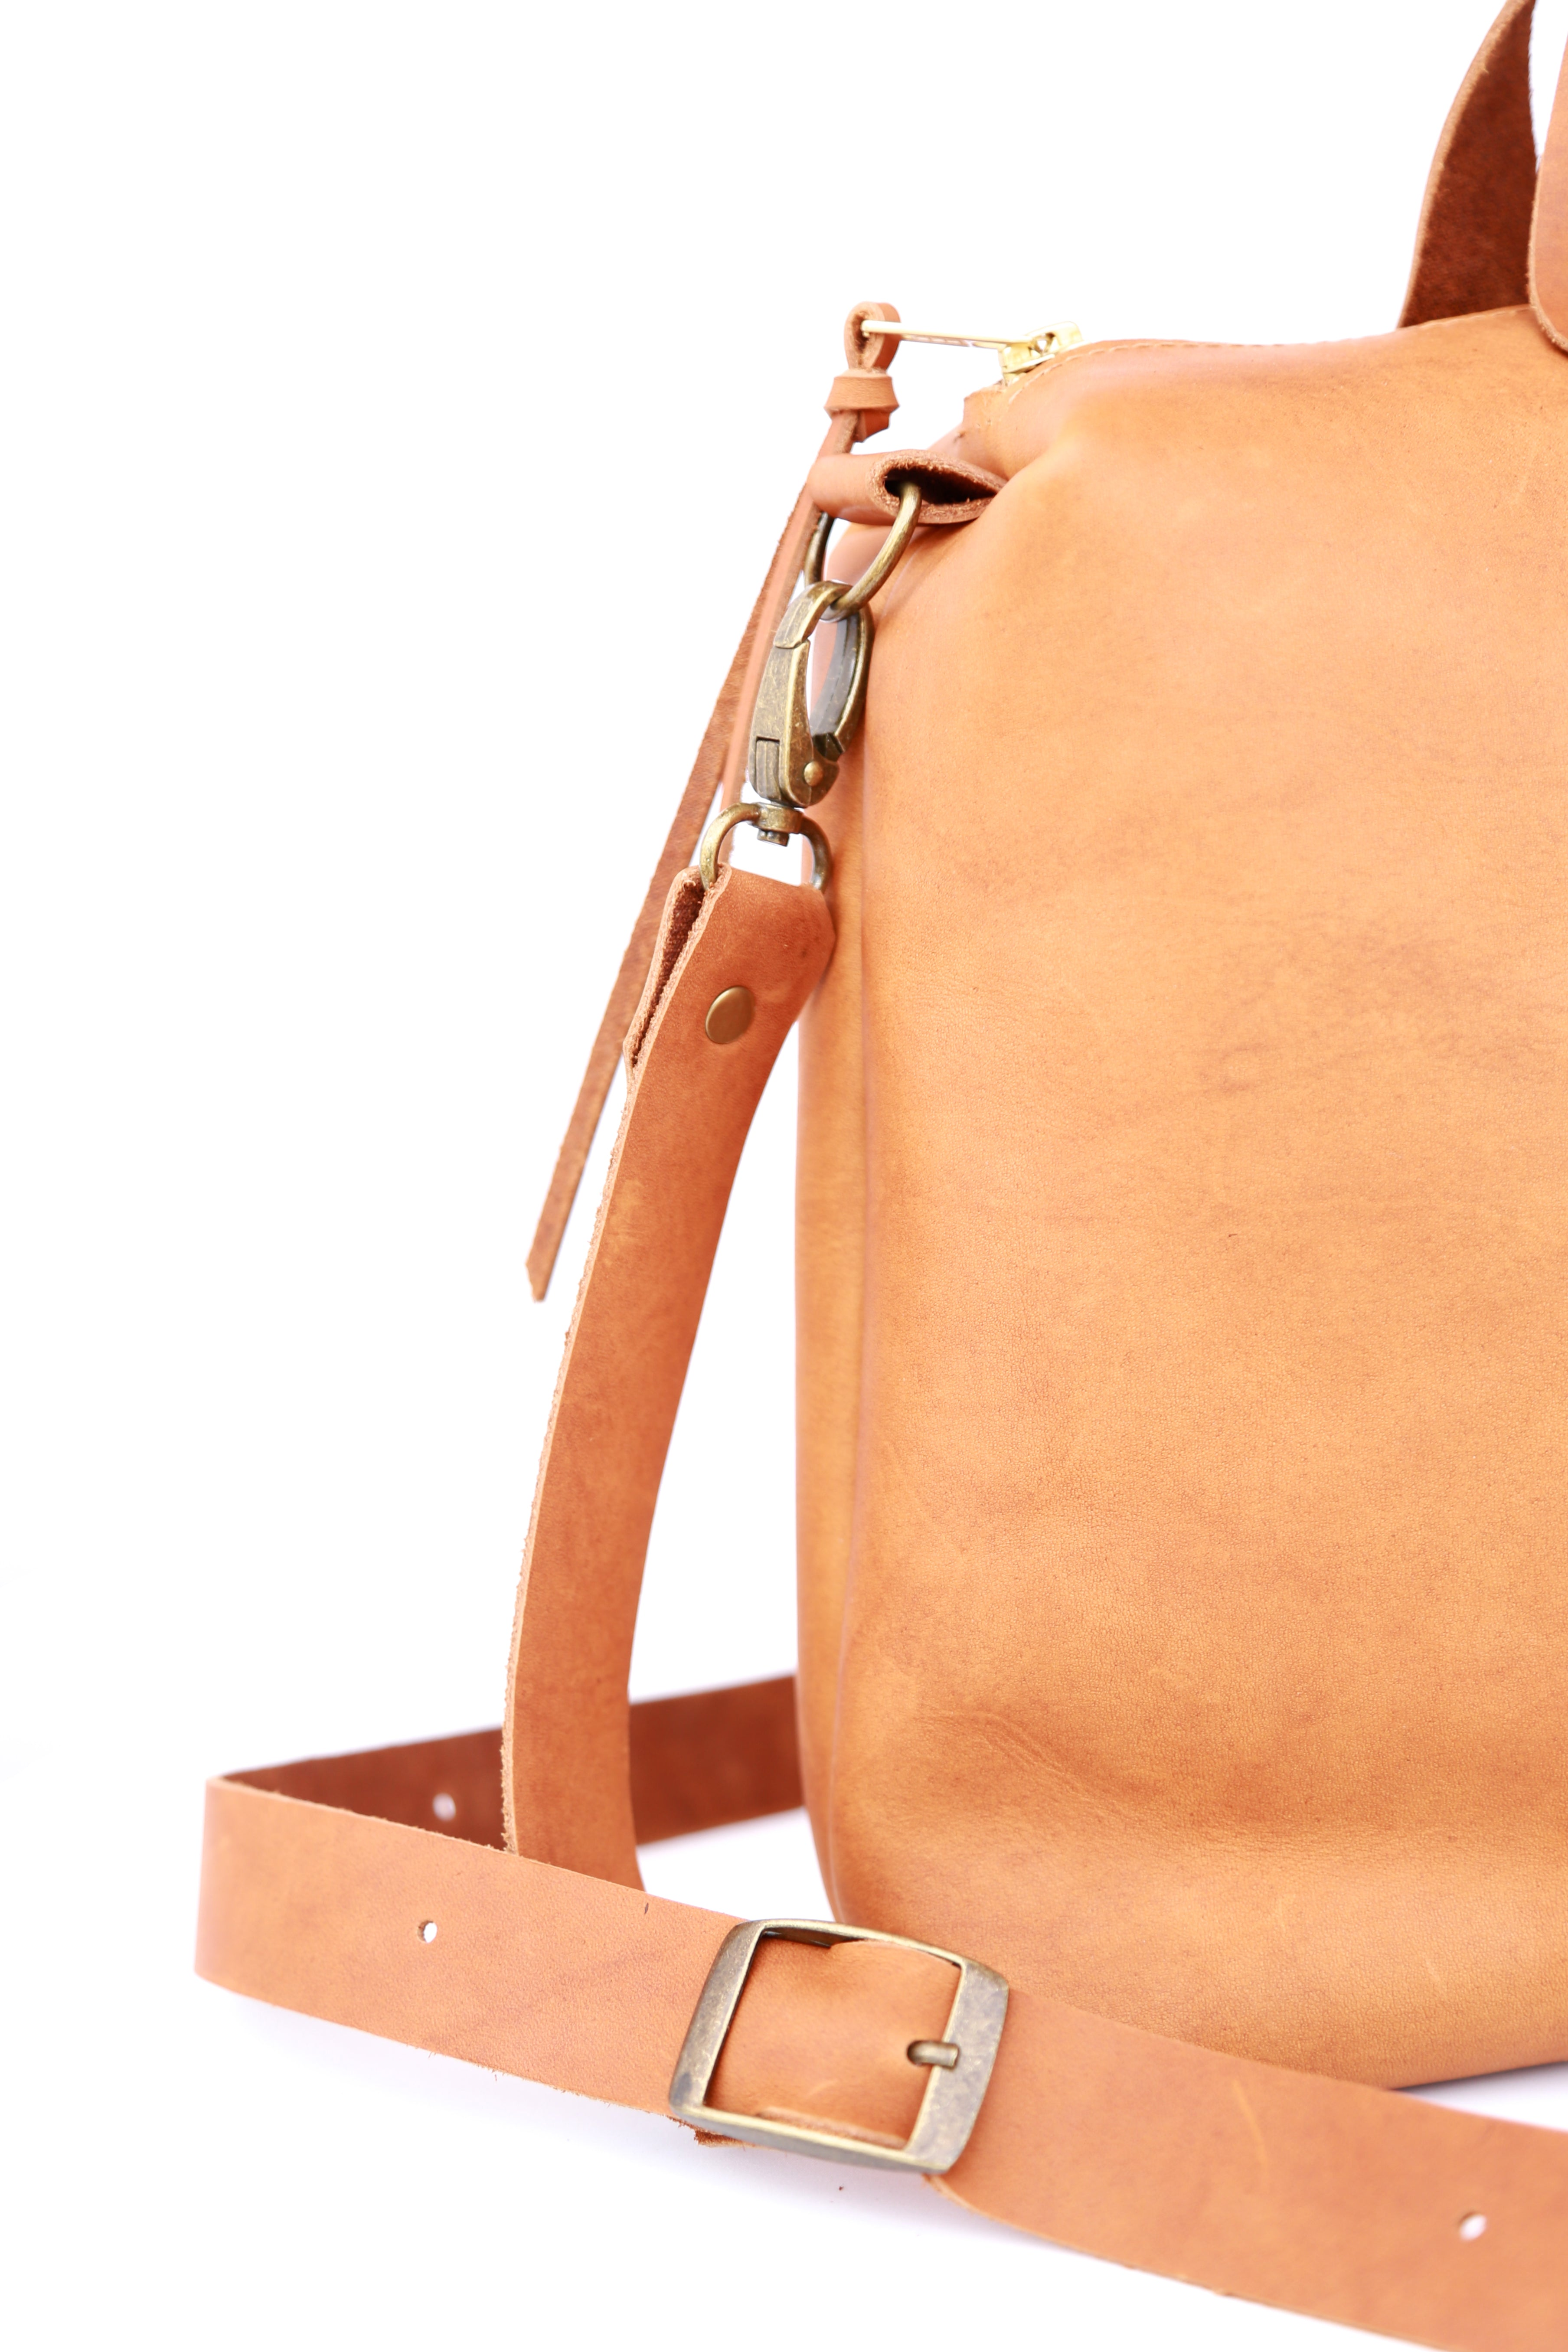 Spy Bag In Caramel Leather - handcrafted by Market Canvas Leather in Tofino, BC, Canada